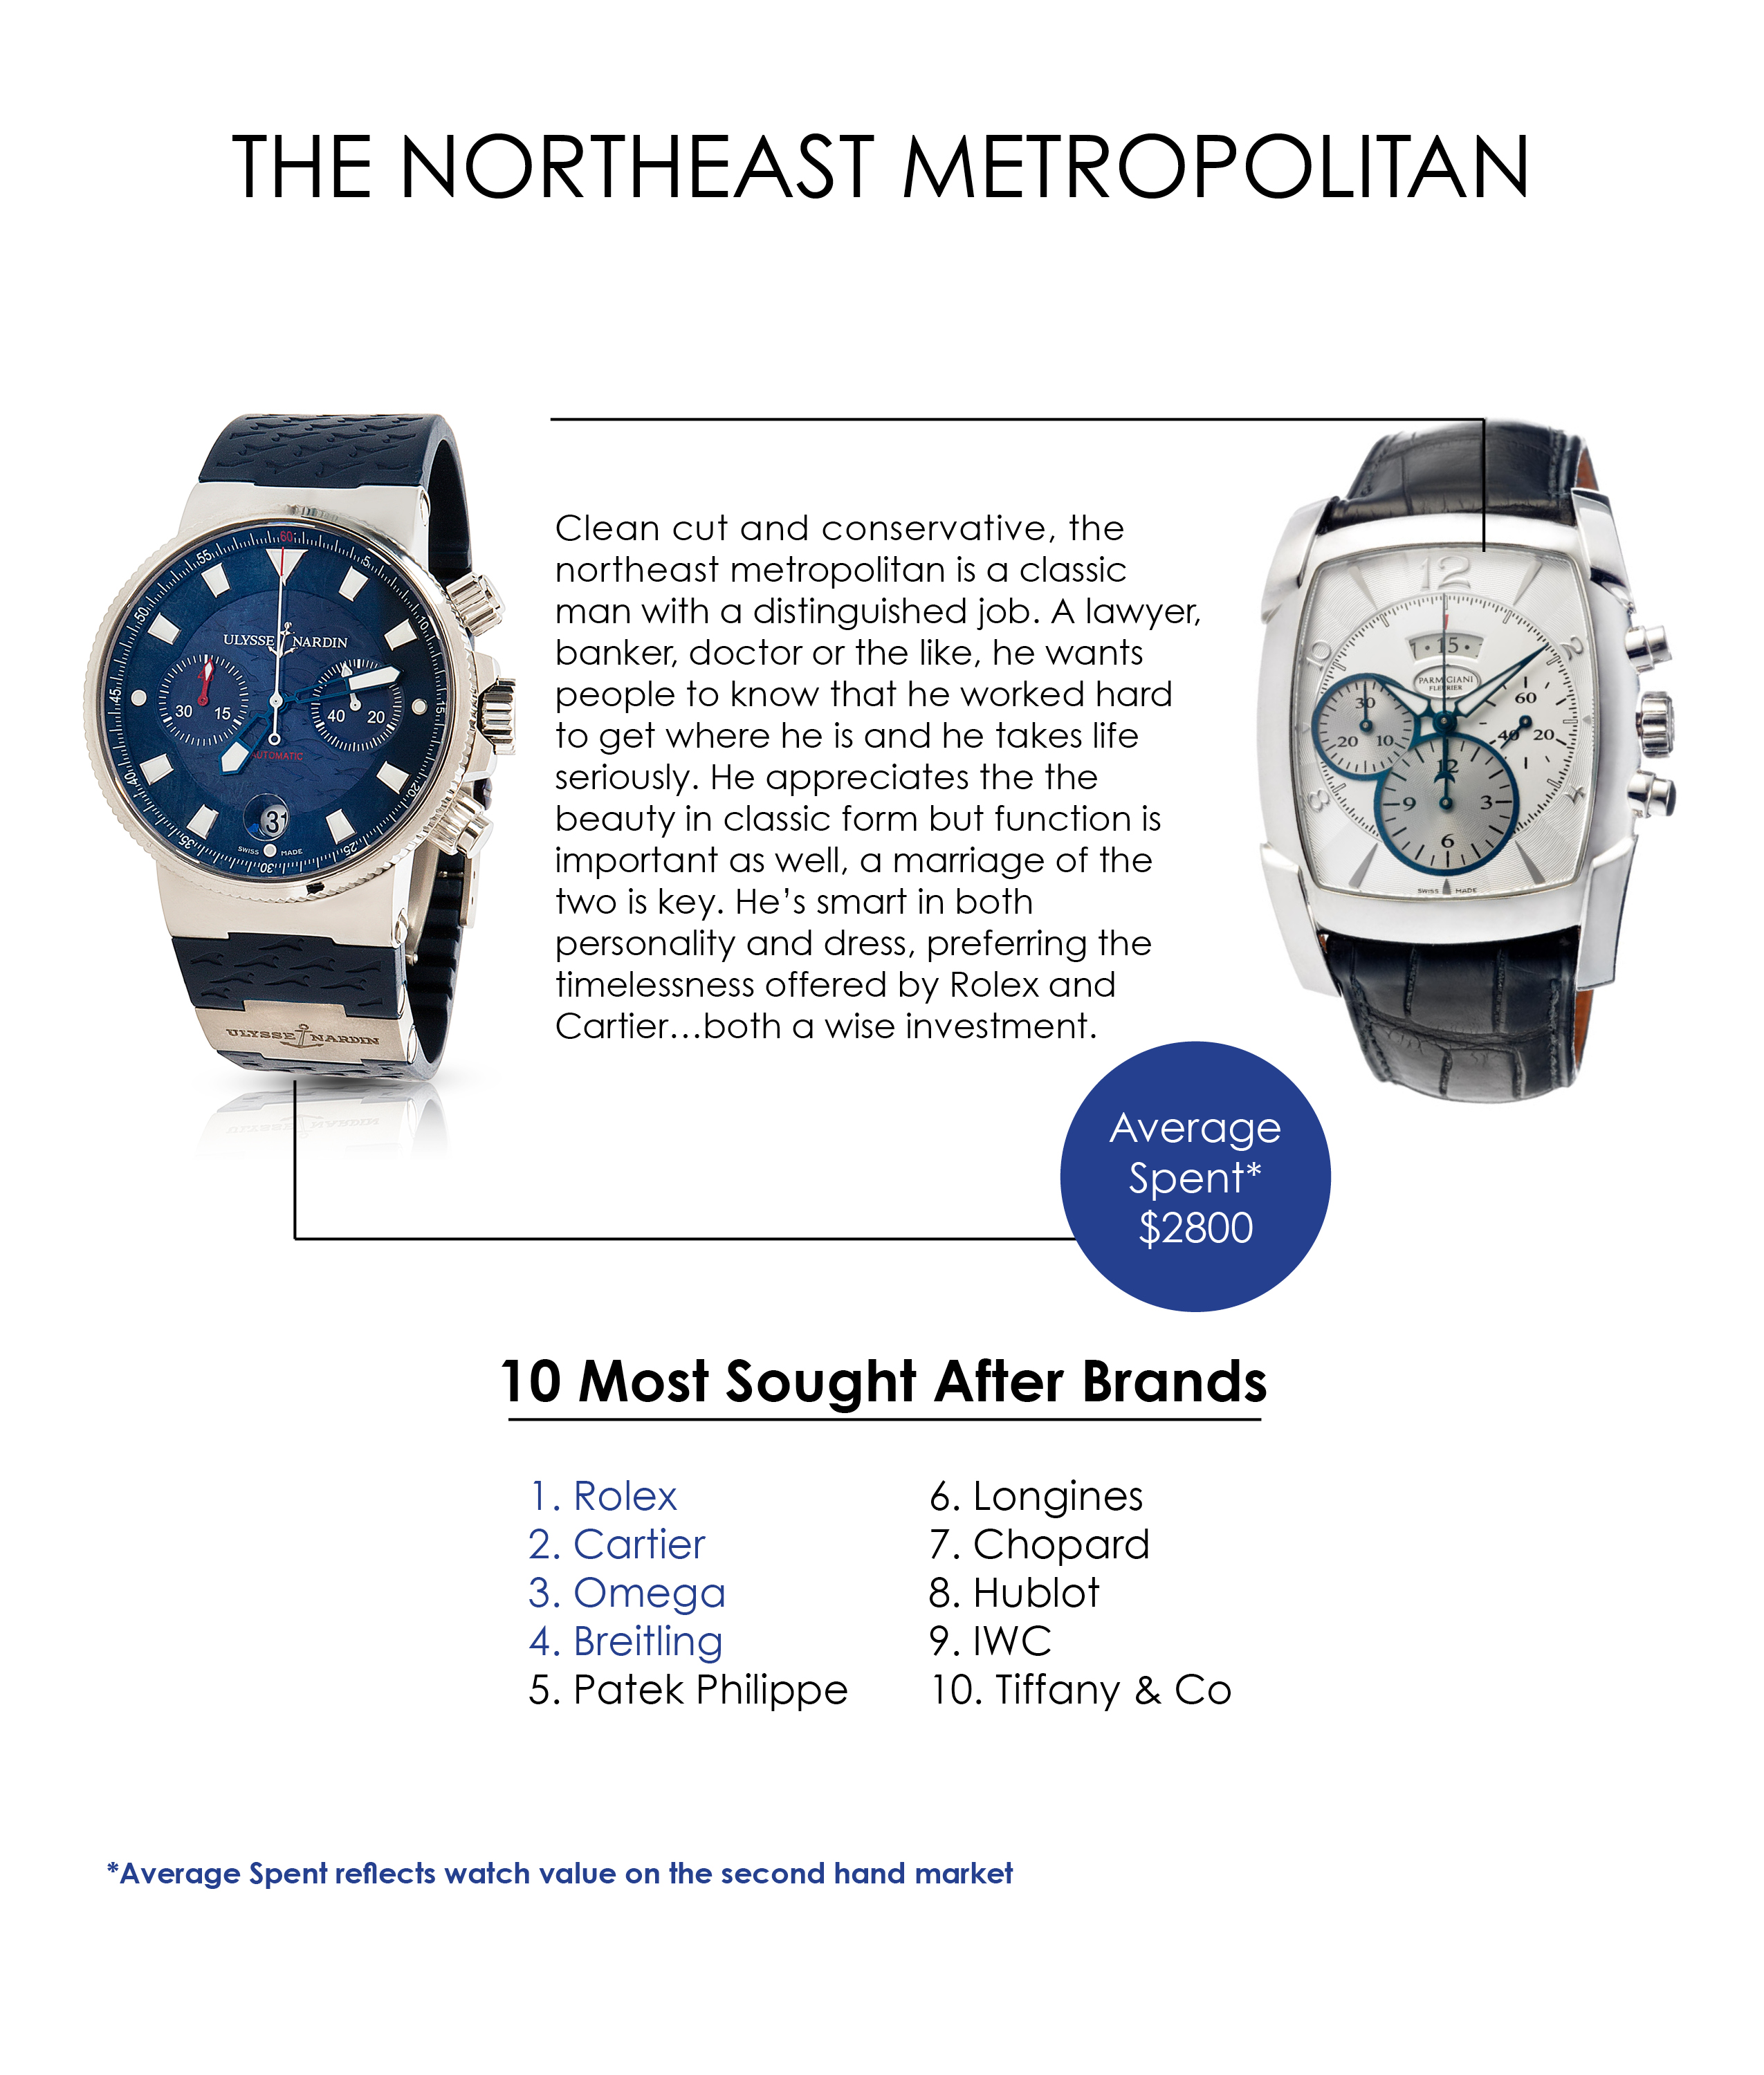 Northeast Metropolitan man watches